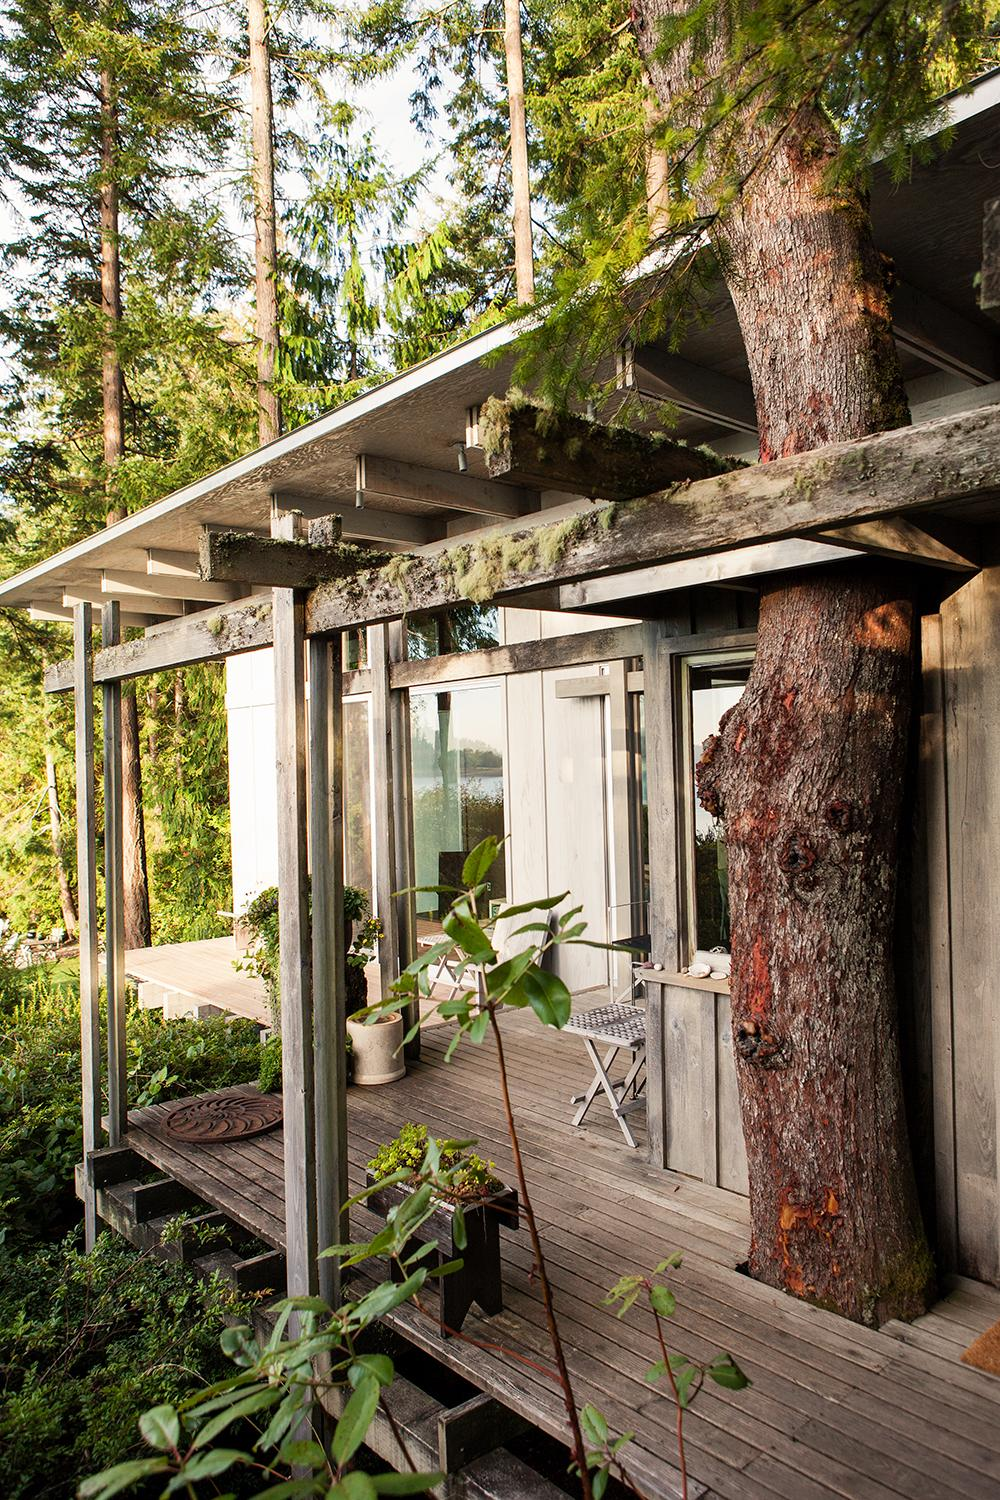 An exterior deck at Jim Olson's holiday home in Washington state